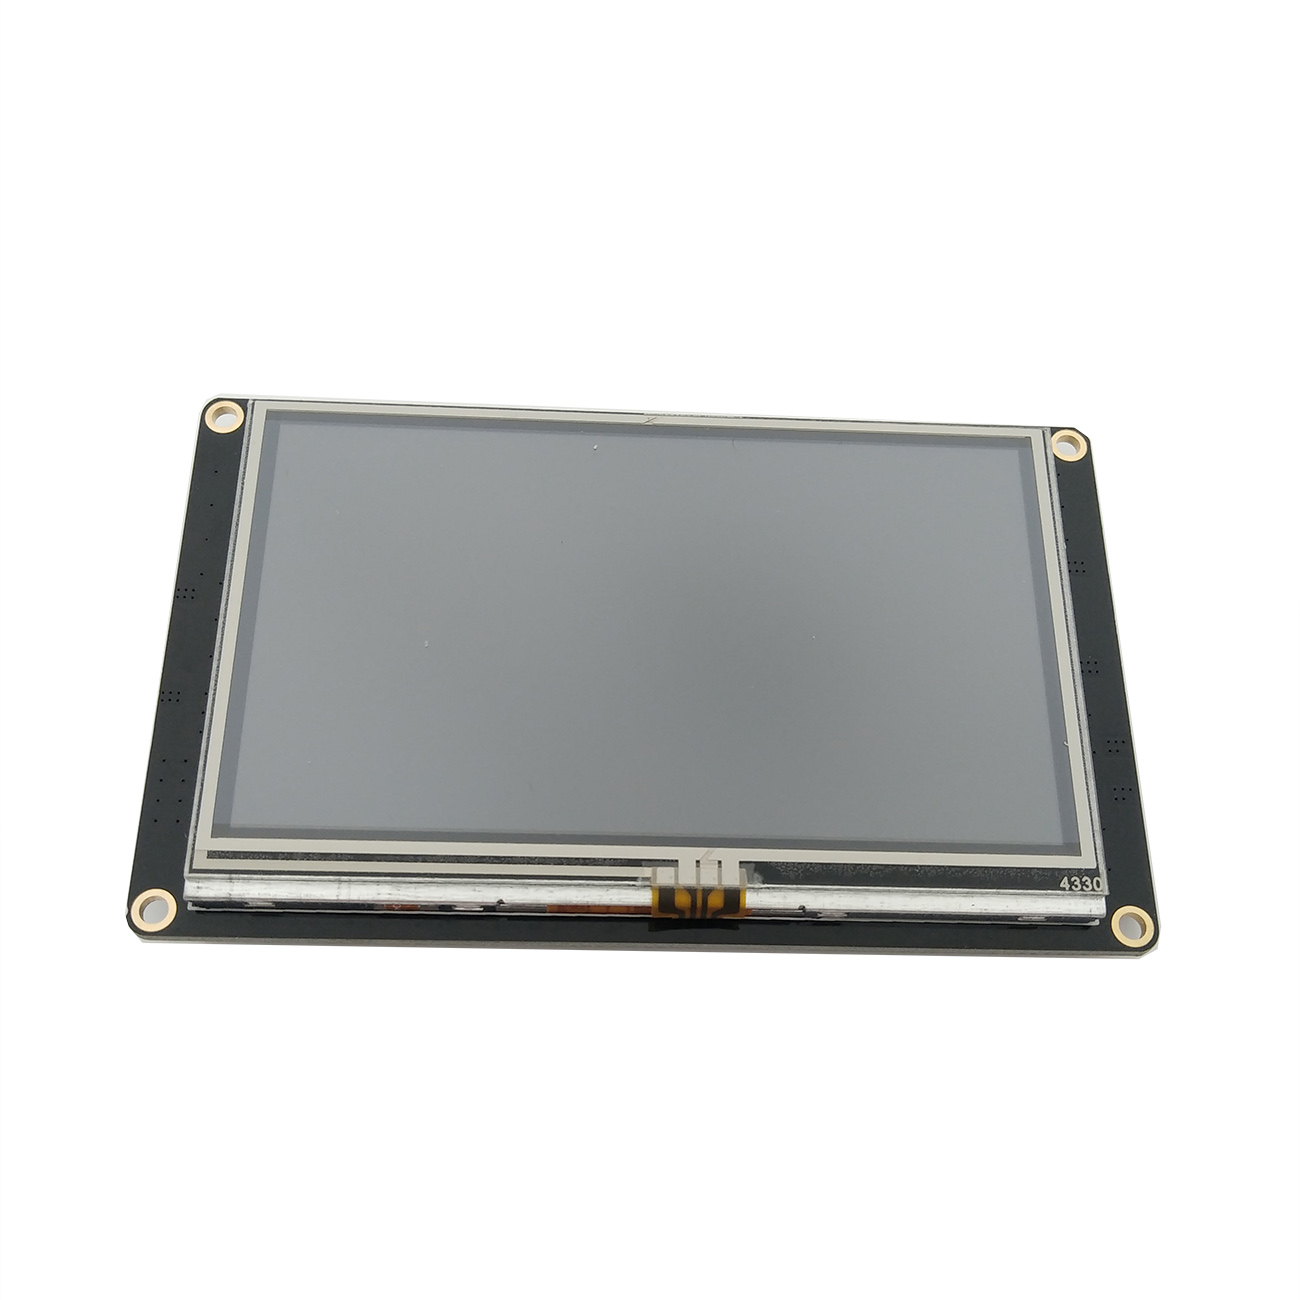 Image 2 - Nextion 4.3 Enhanced HMI Intelligent Smart USART UART Serial Touch TFT LCD Module Display Panel For Raspberry Pi Kits-in LCD Modules from Electronic Components & Supplies